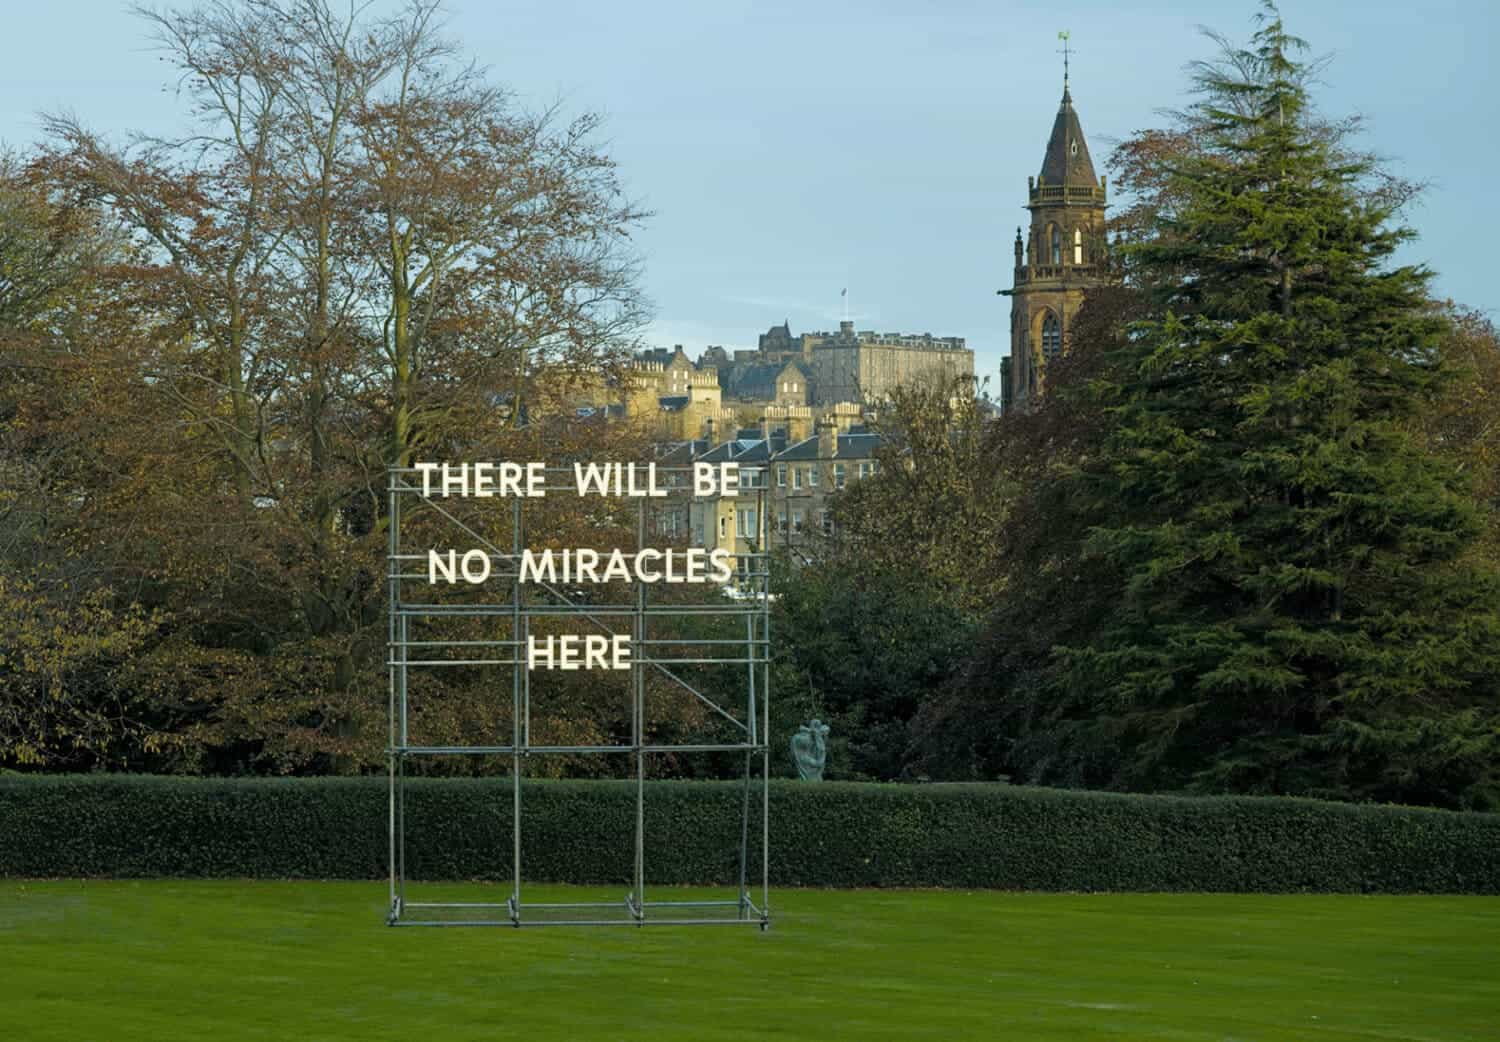 Nathan Coley, There Will Be No Miracles Here, 2006, Scottish National Gallery of Modern Art, 75 Belford Road, Edinburgh EH4 3DR, Scotland. Collection of the National Galleries of Scotland. © Studio Nathan Coley